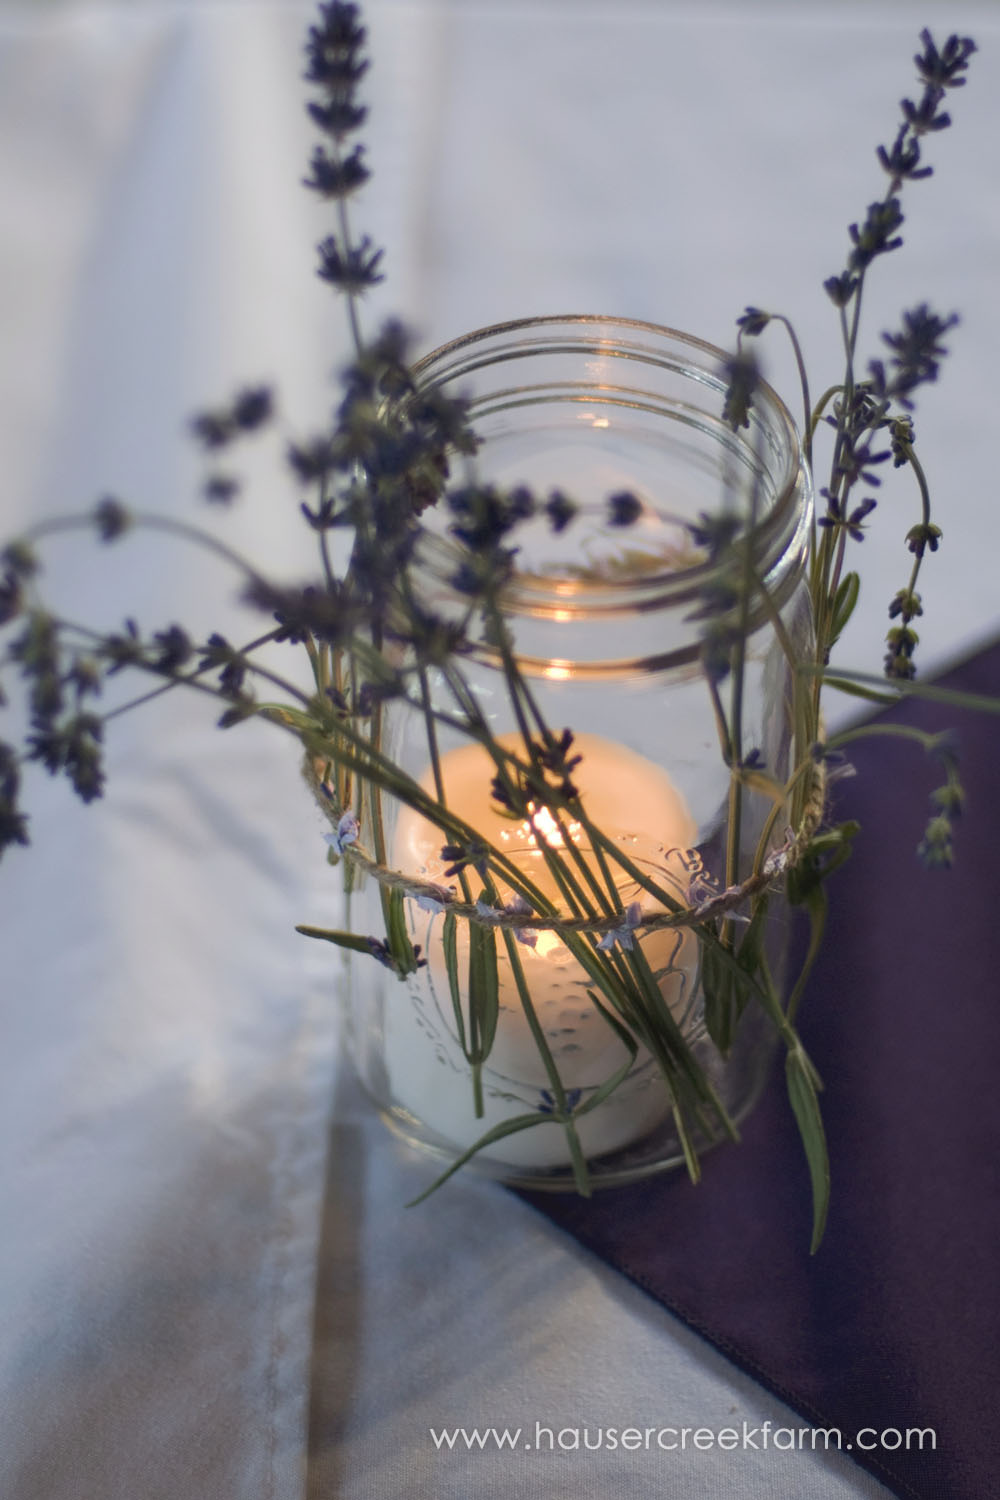 lavender-with-candle-in-jar-for-weddinga-photo-by-ashley-0888.jpg